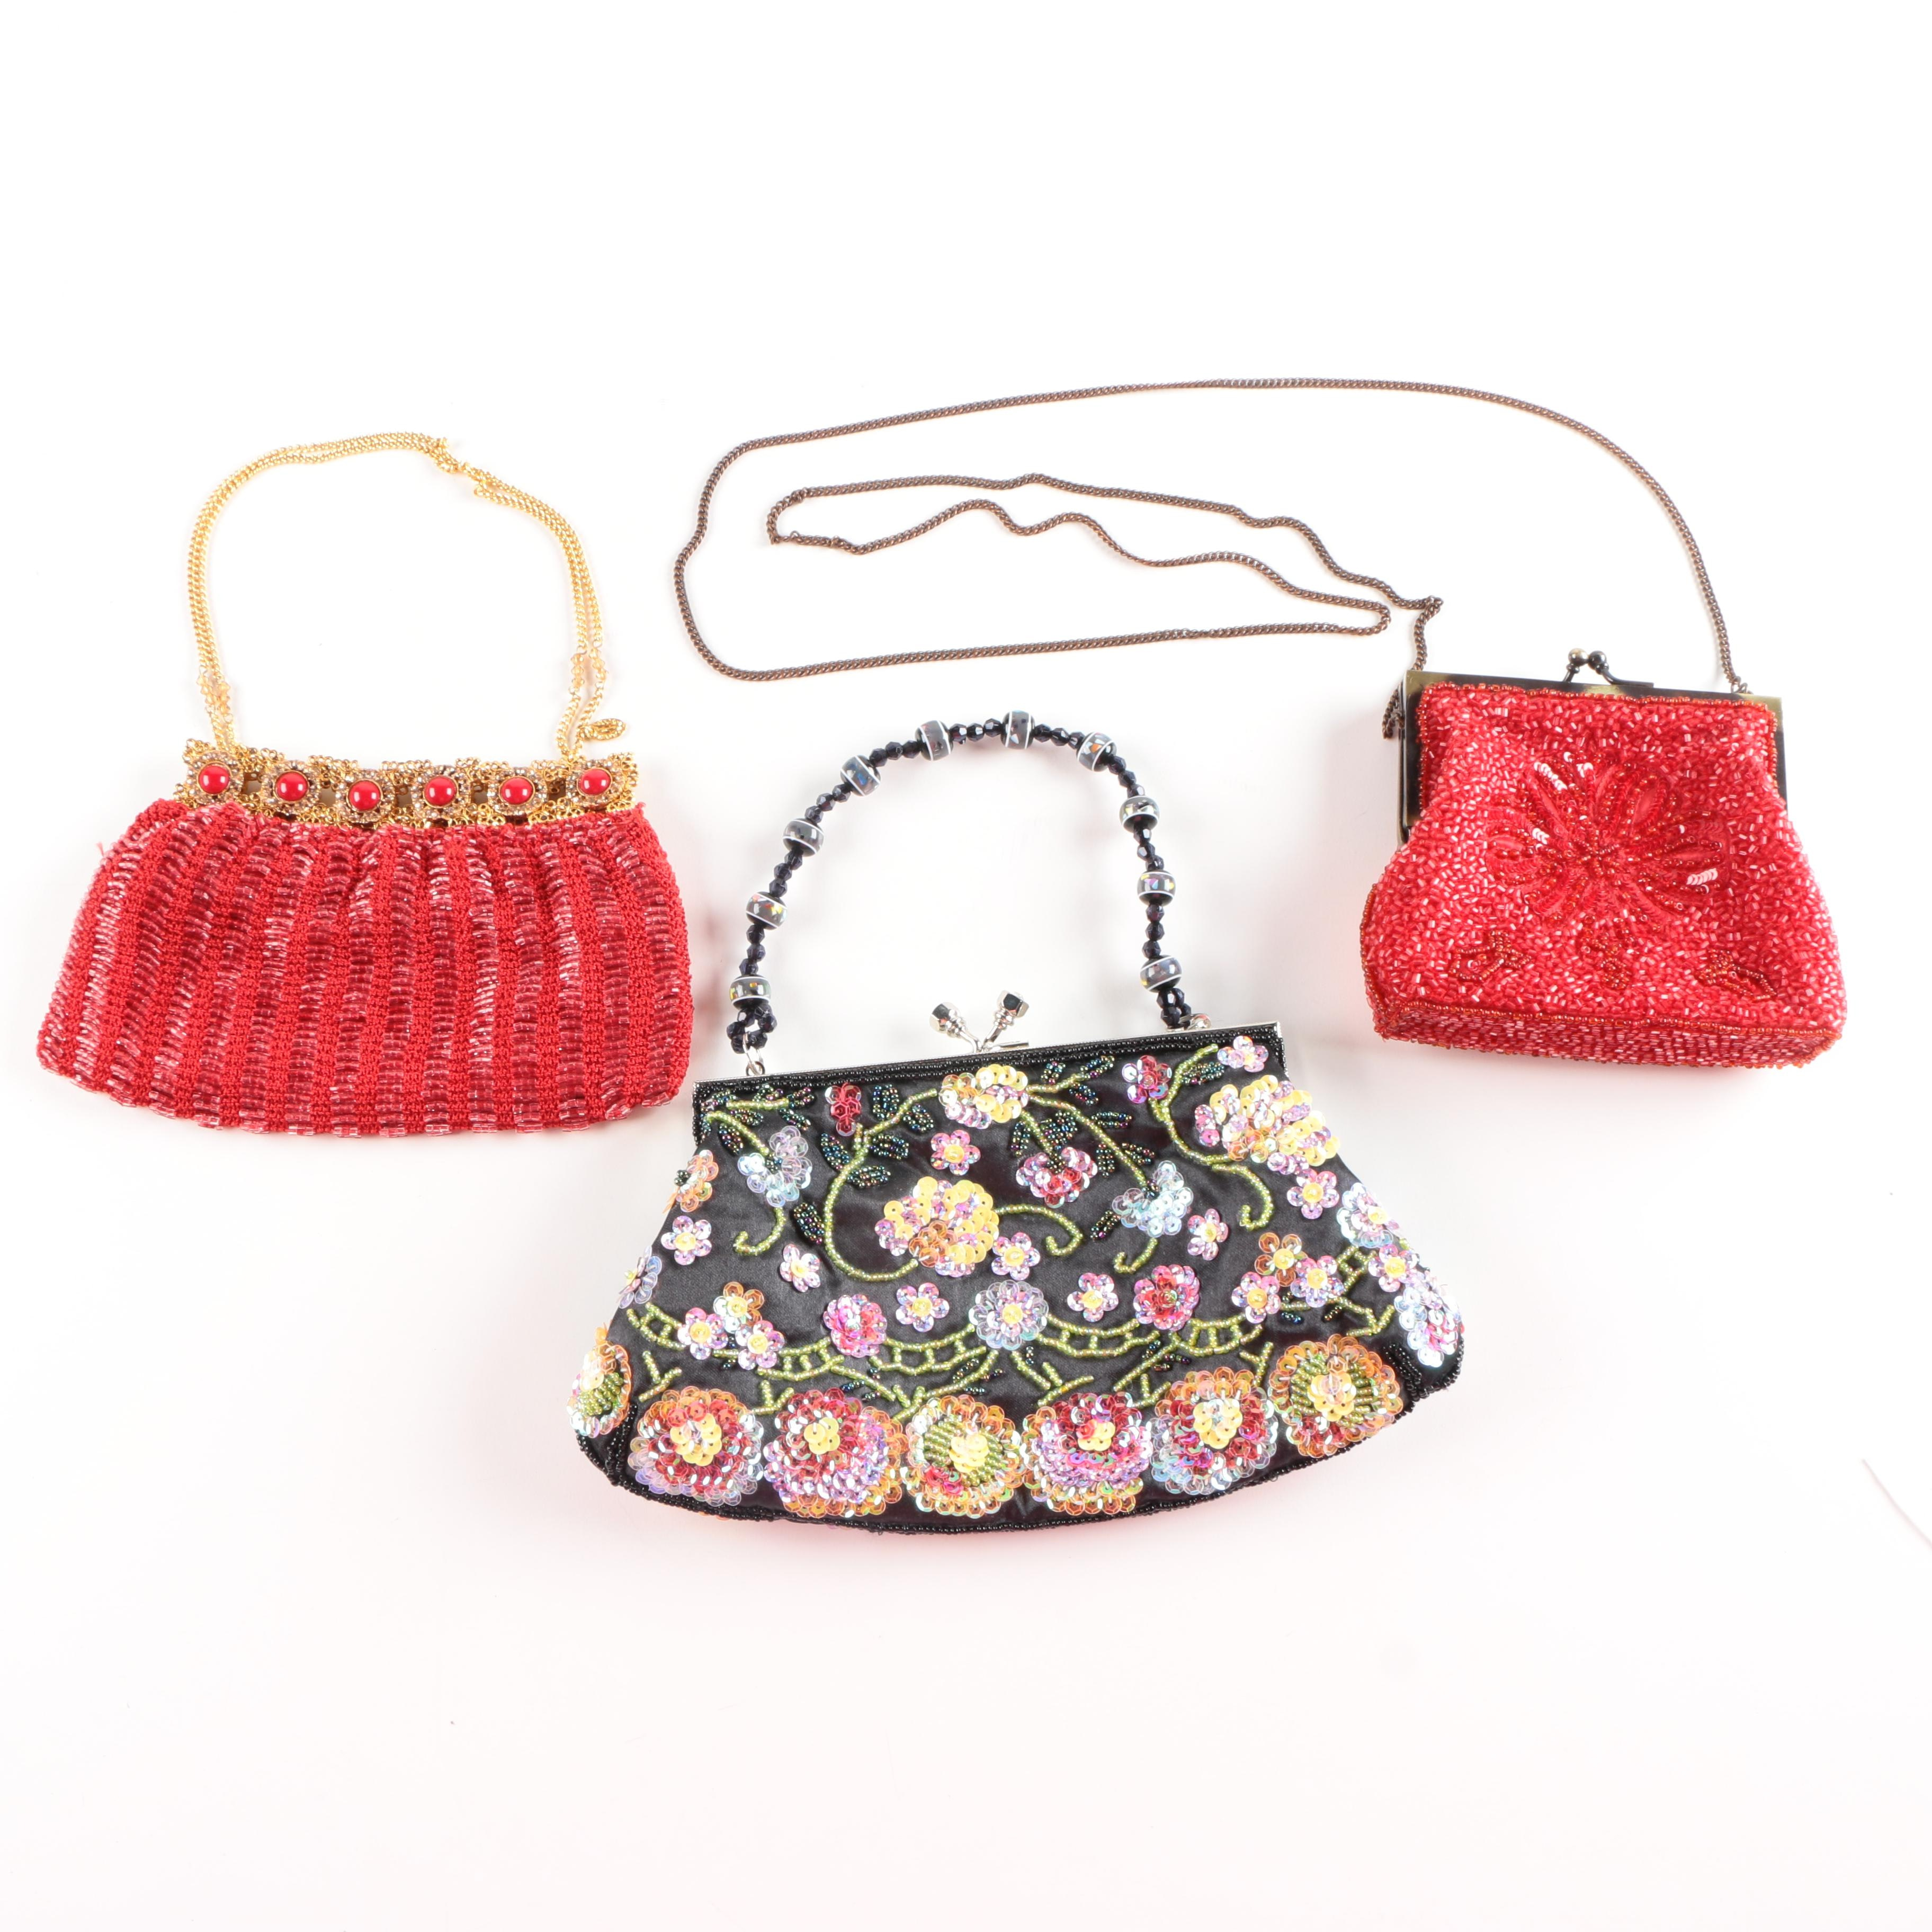 Beaded Evening Bags Including Clara Kasavina